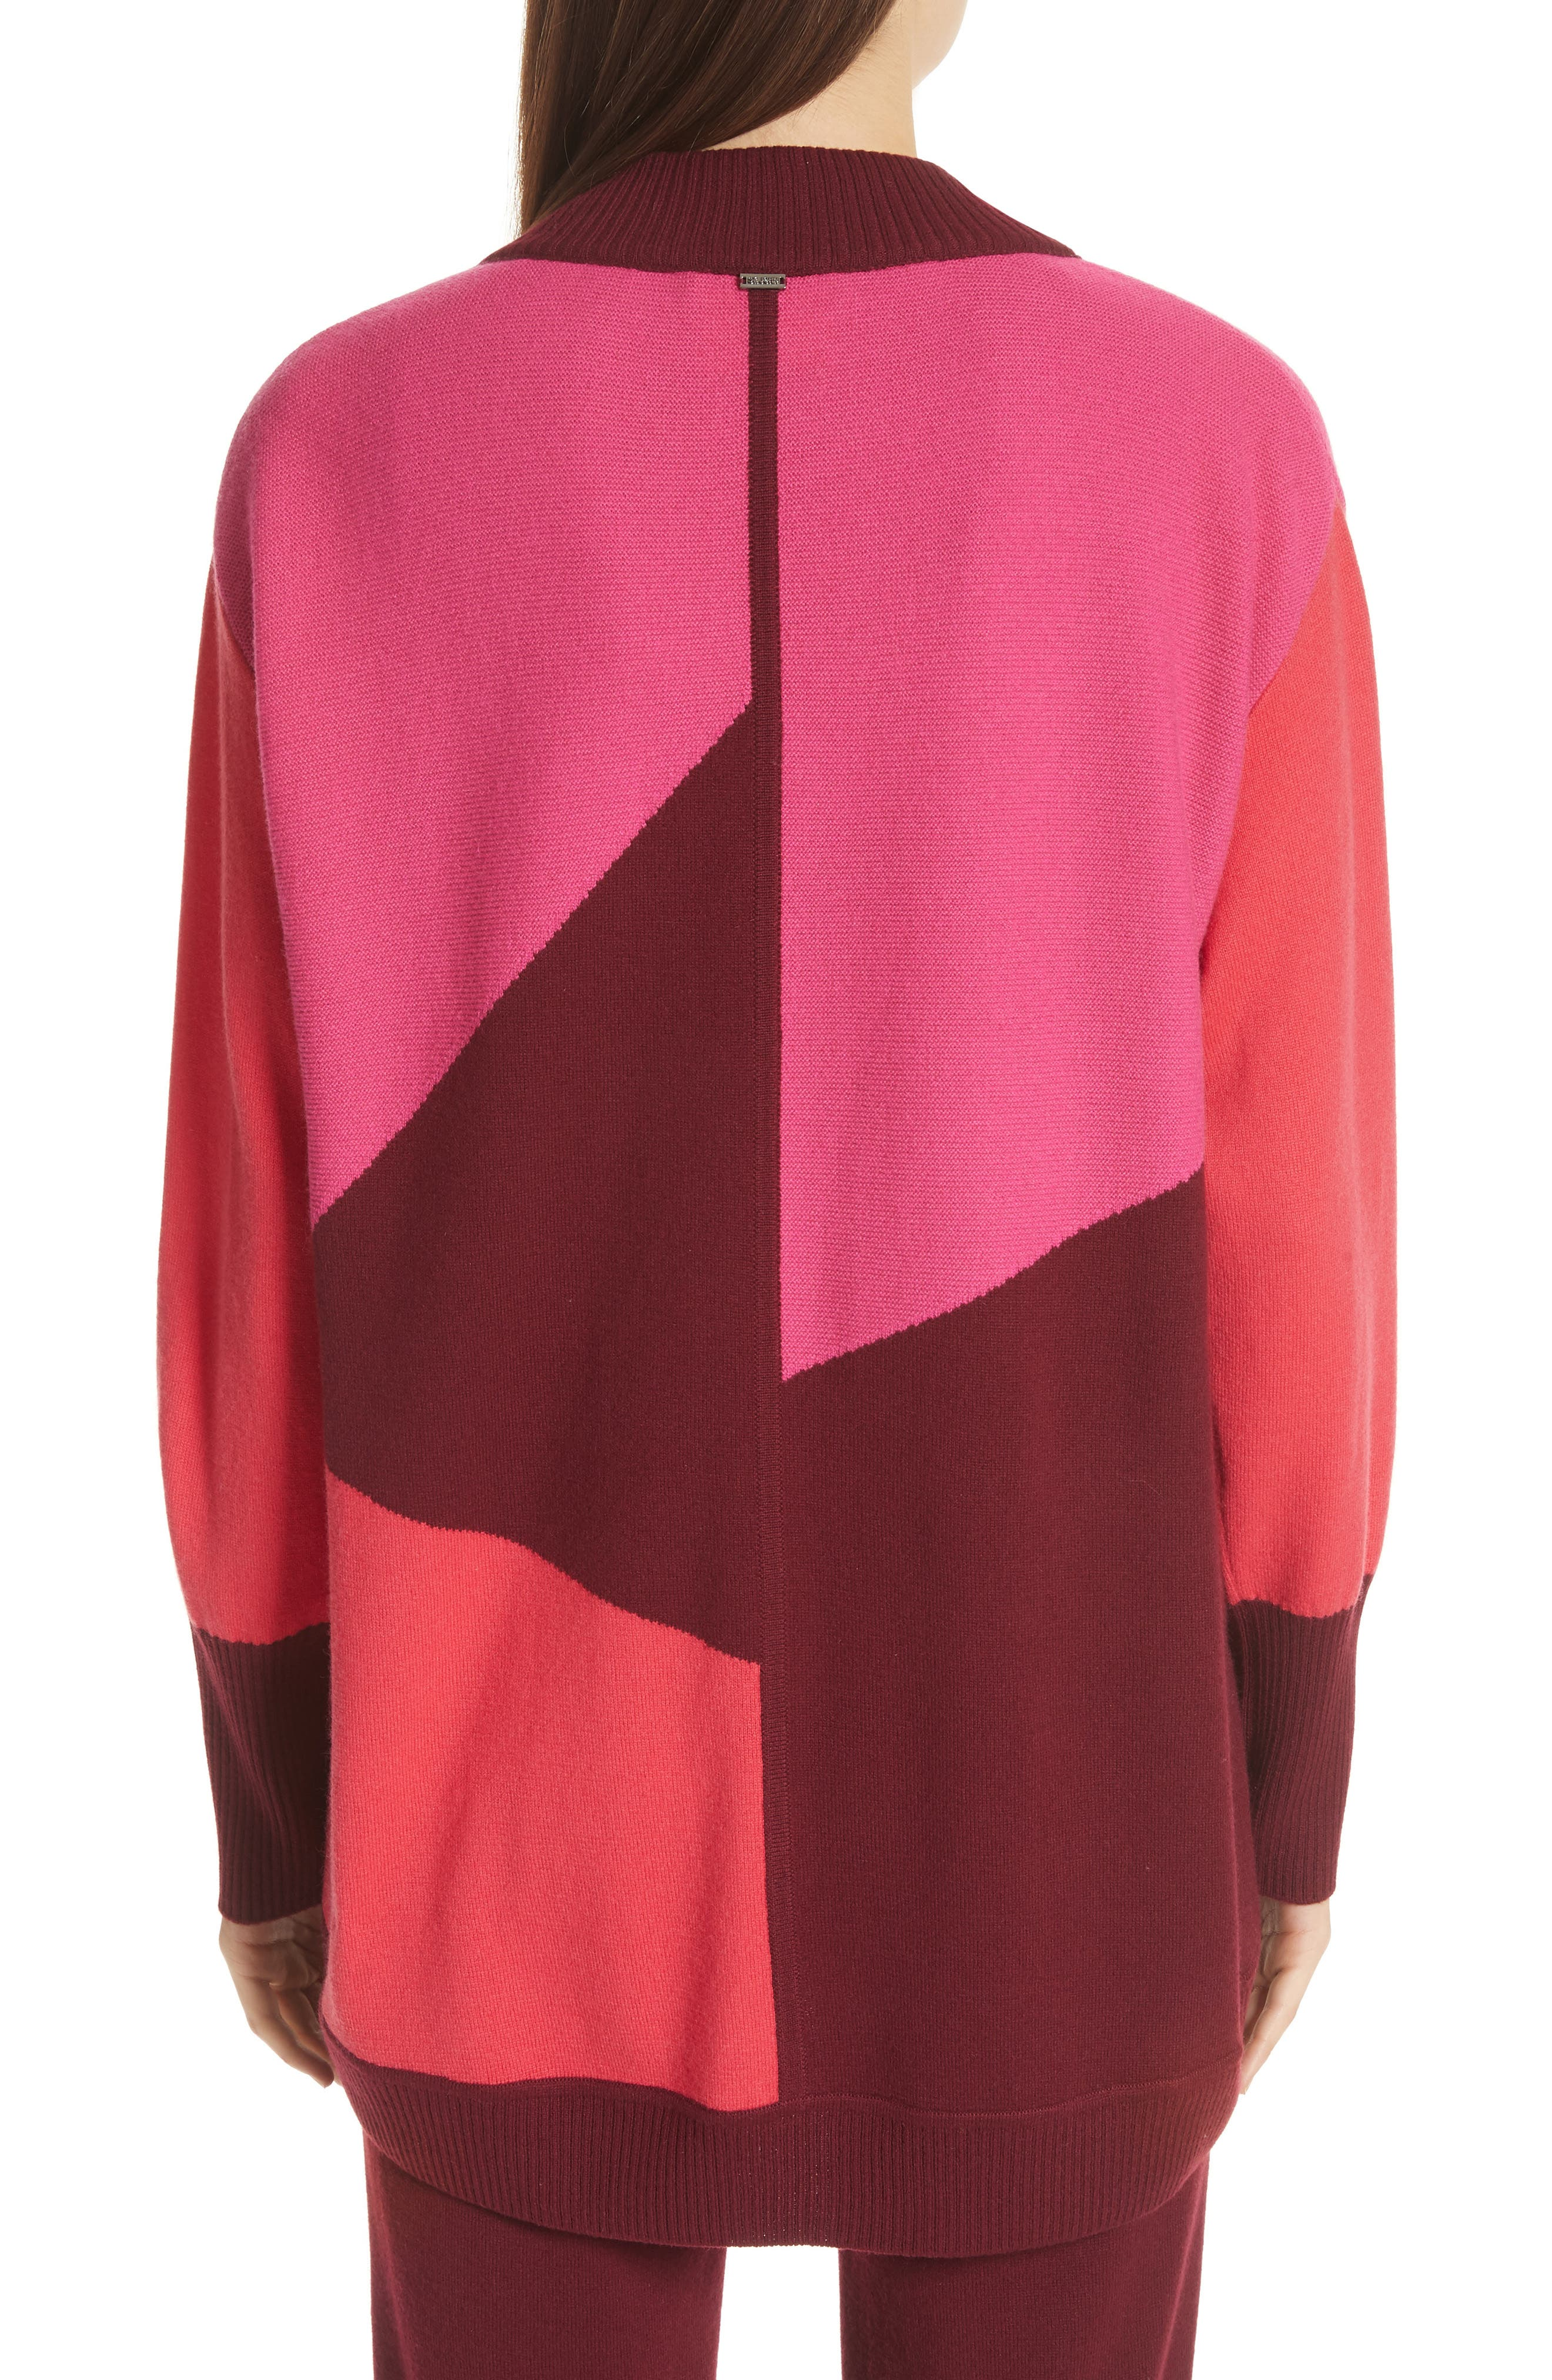 ST. JOHN COLLECTION,                             Colorblock Intarsia Knit Cardigan,                             Alternate thumbnail 2, color,                             650